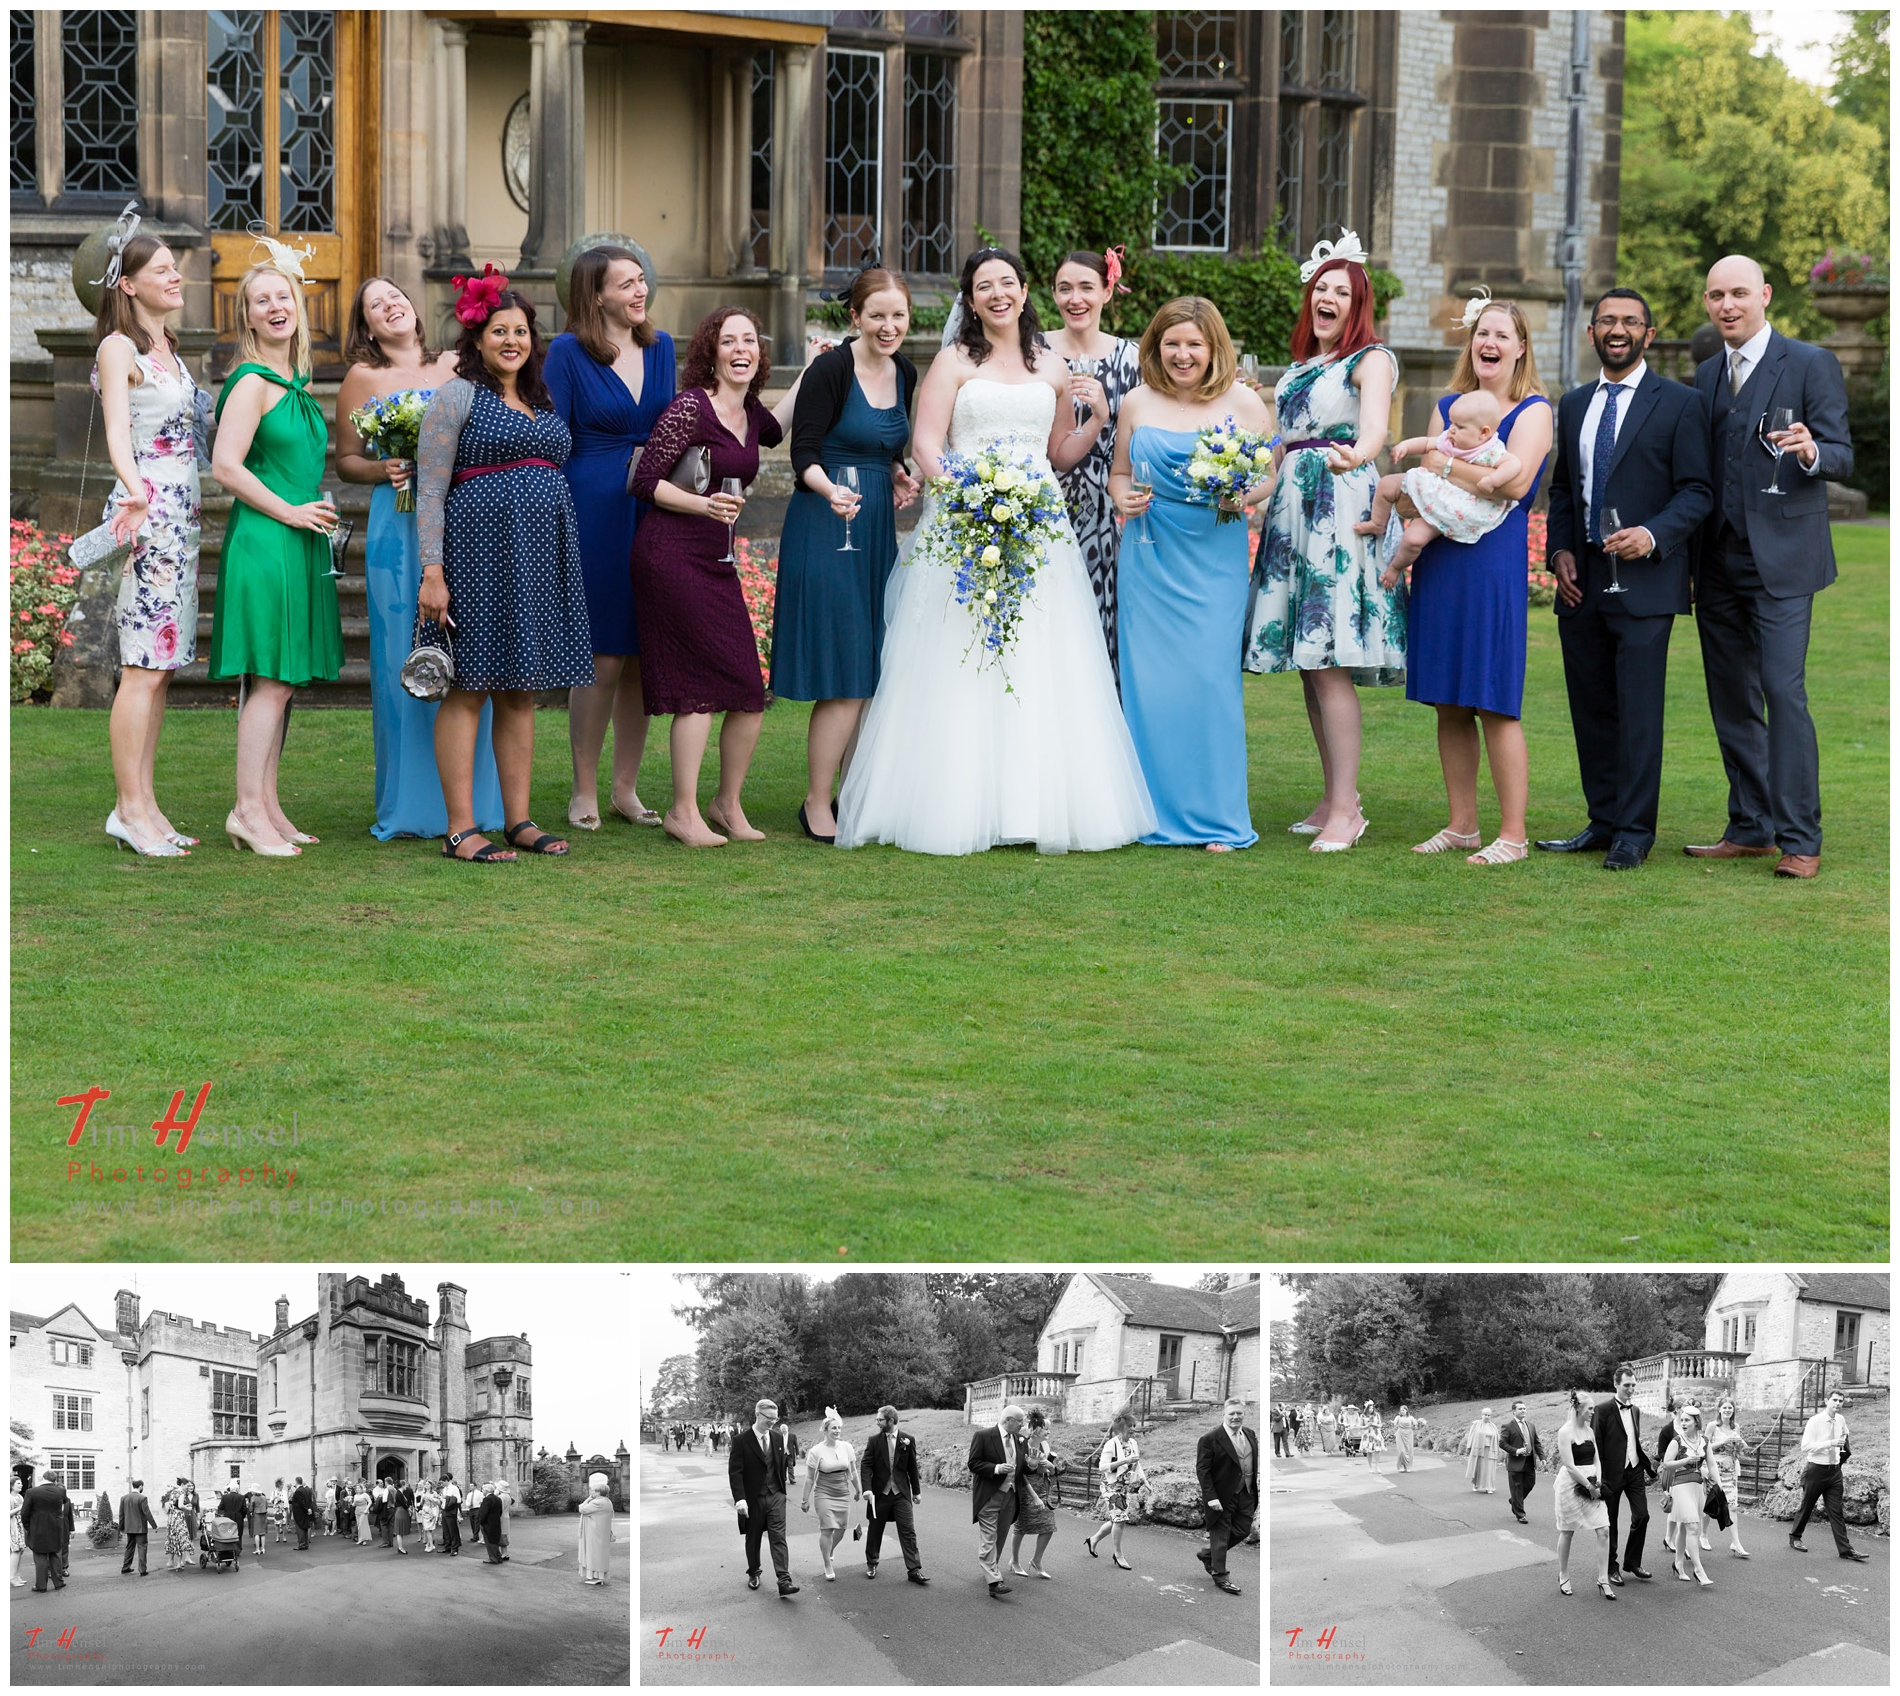 A fun take on group photos and natural shots of guests at thornbridge hall